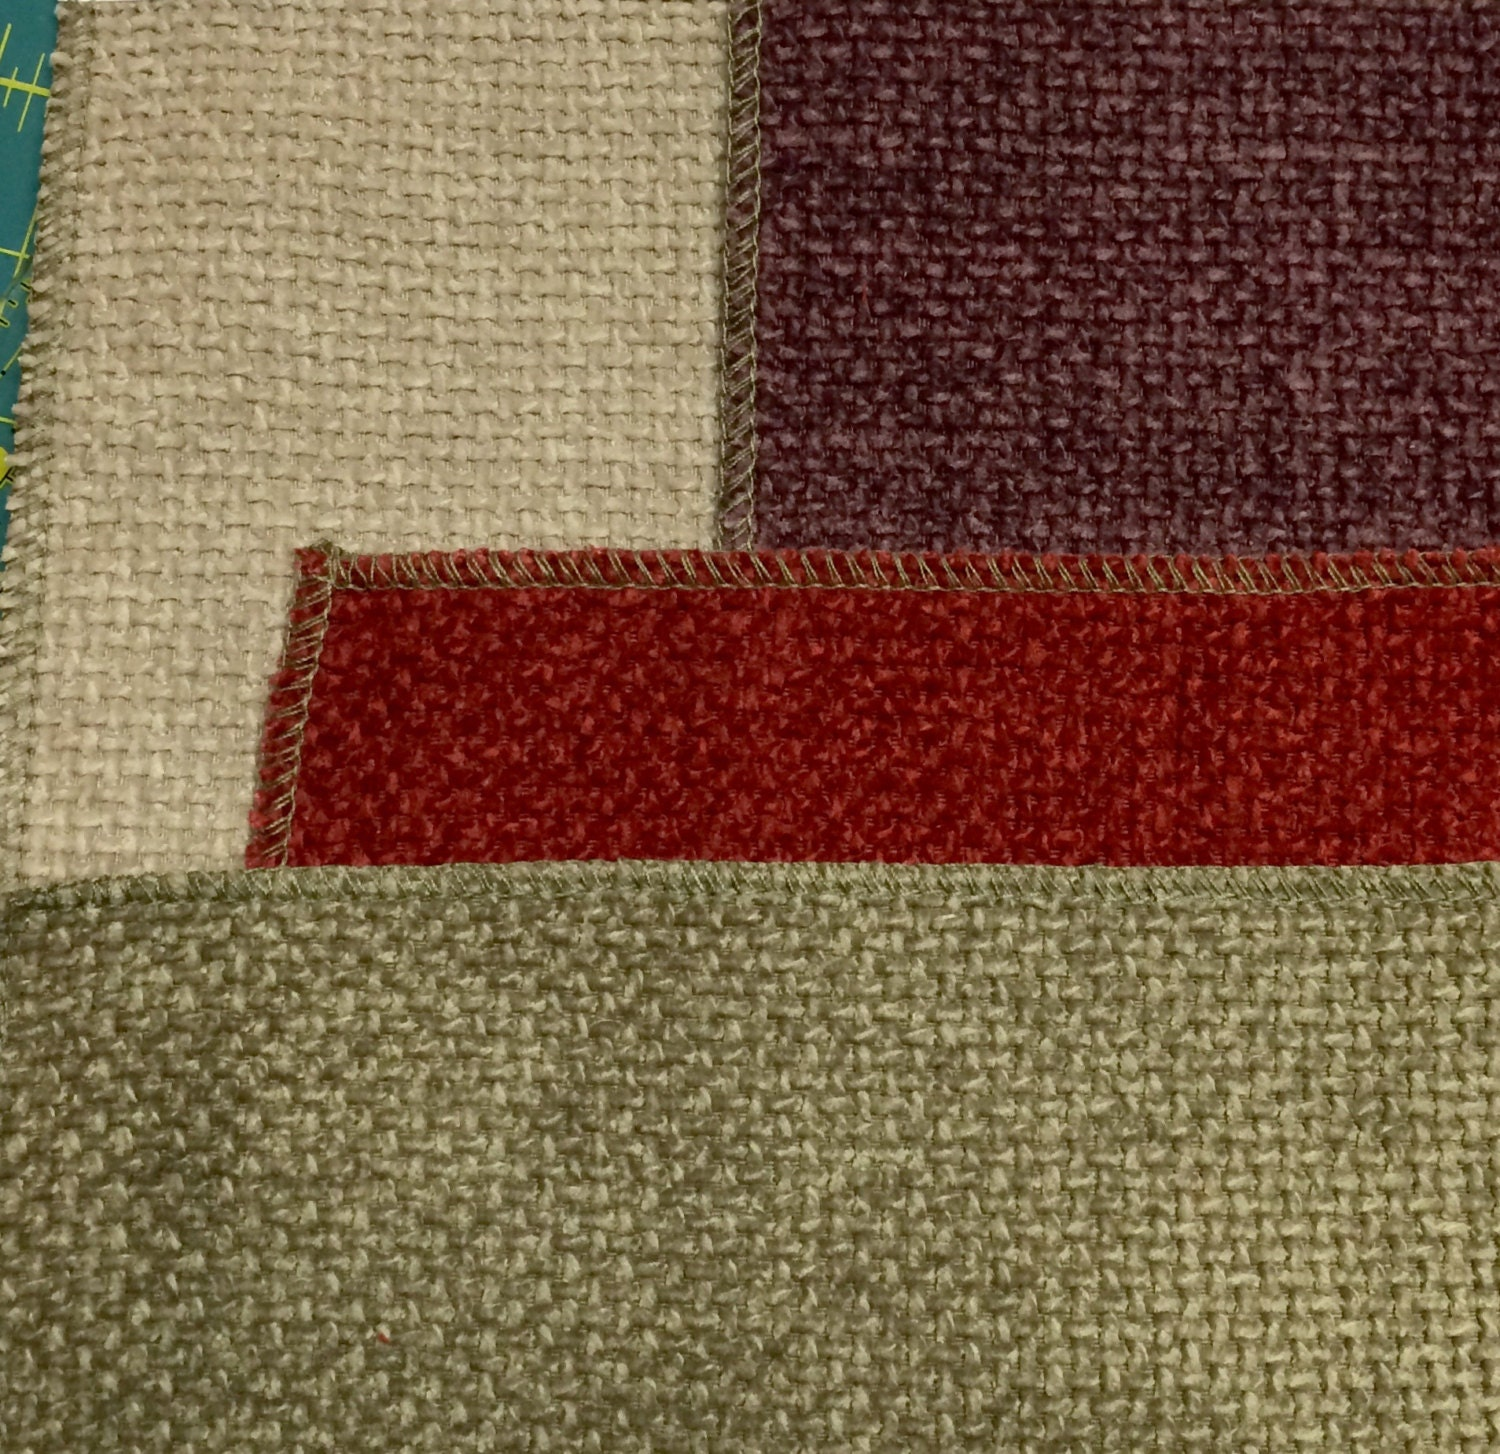 Upholstery Fabric Samples 4 Soft Woven